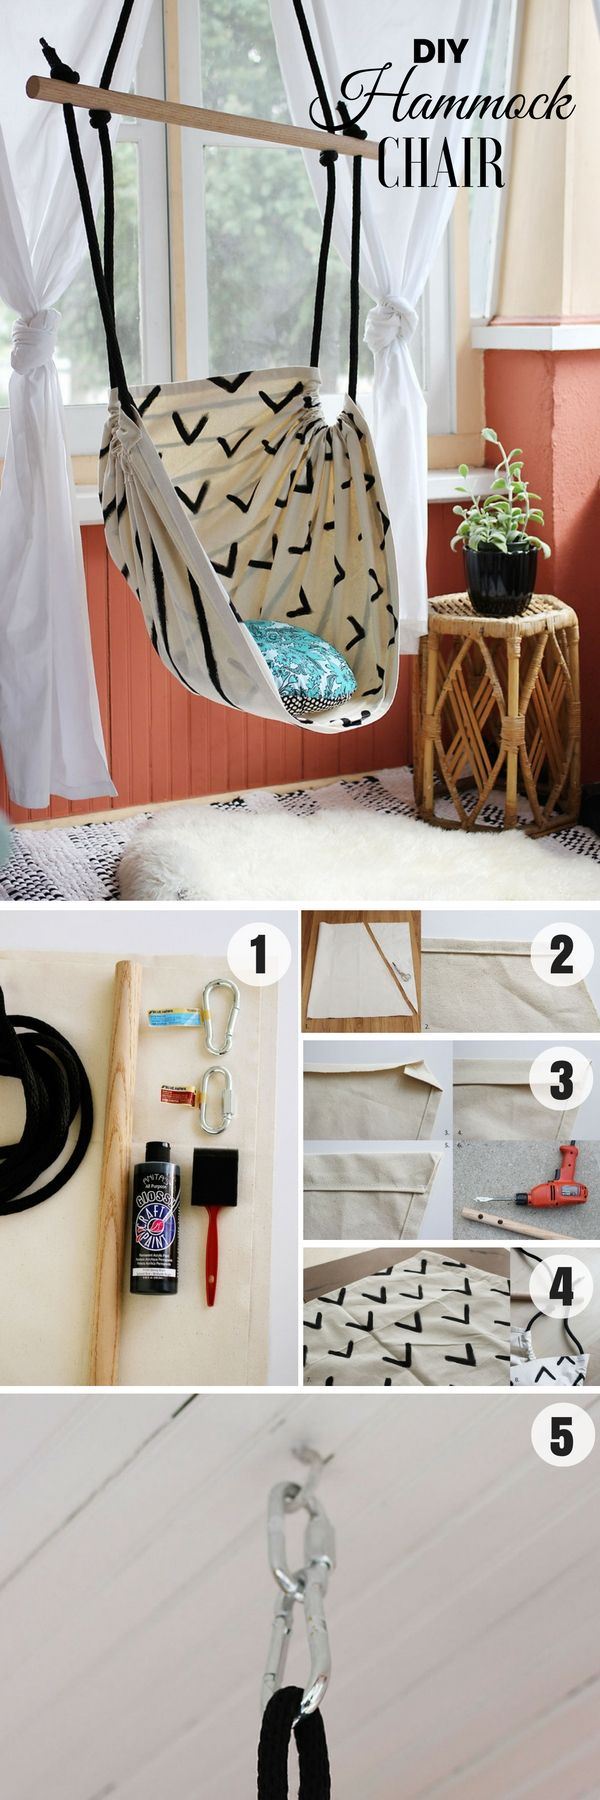 Check out how to make an easy DIY Hammock Chair for bedroom decor